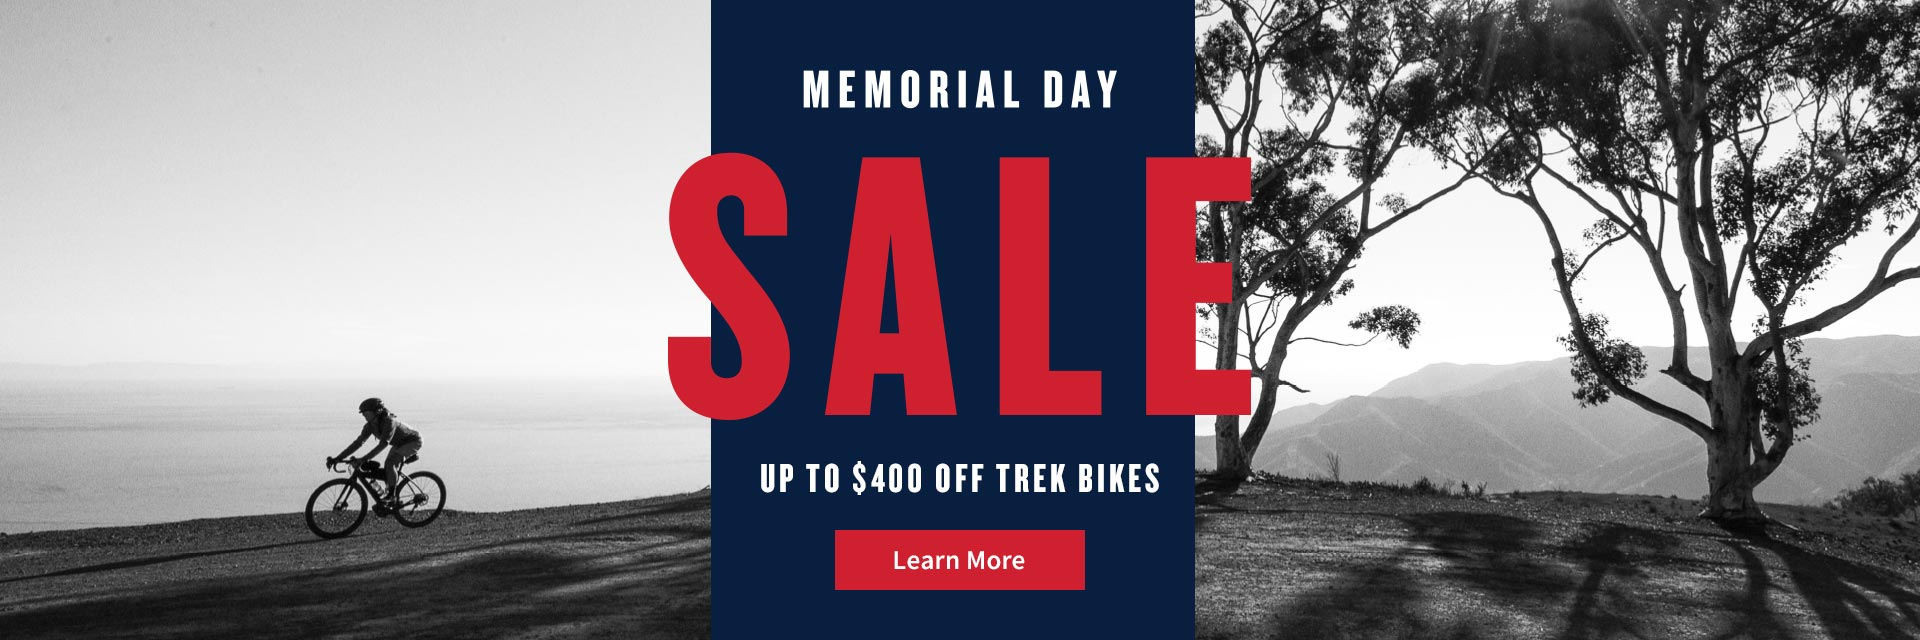 Trek Memorial Day Sale